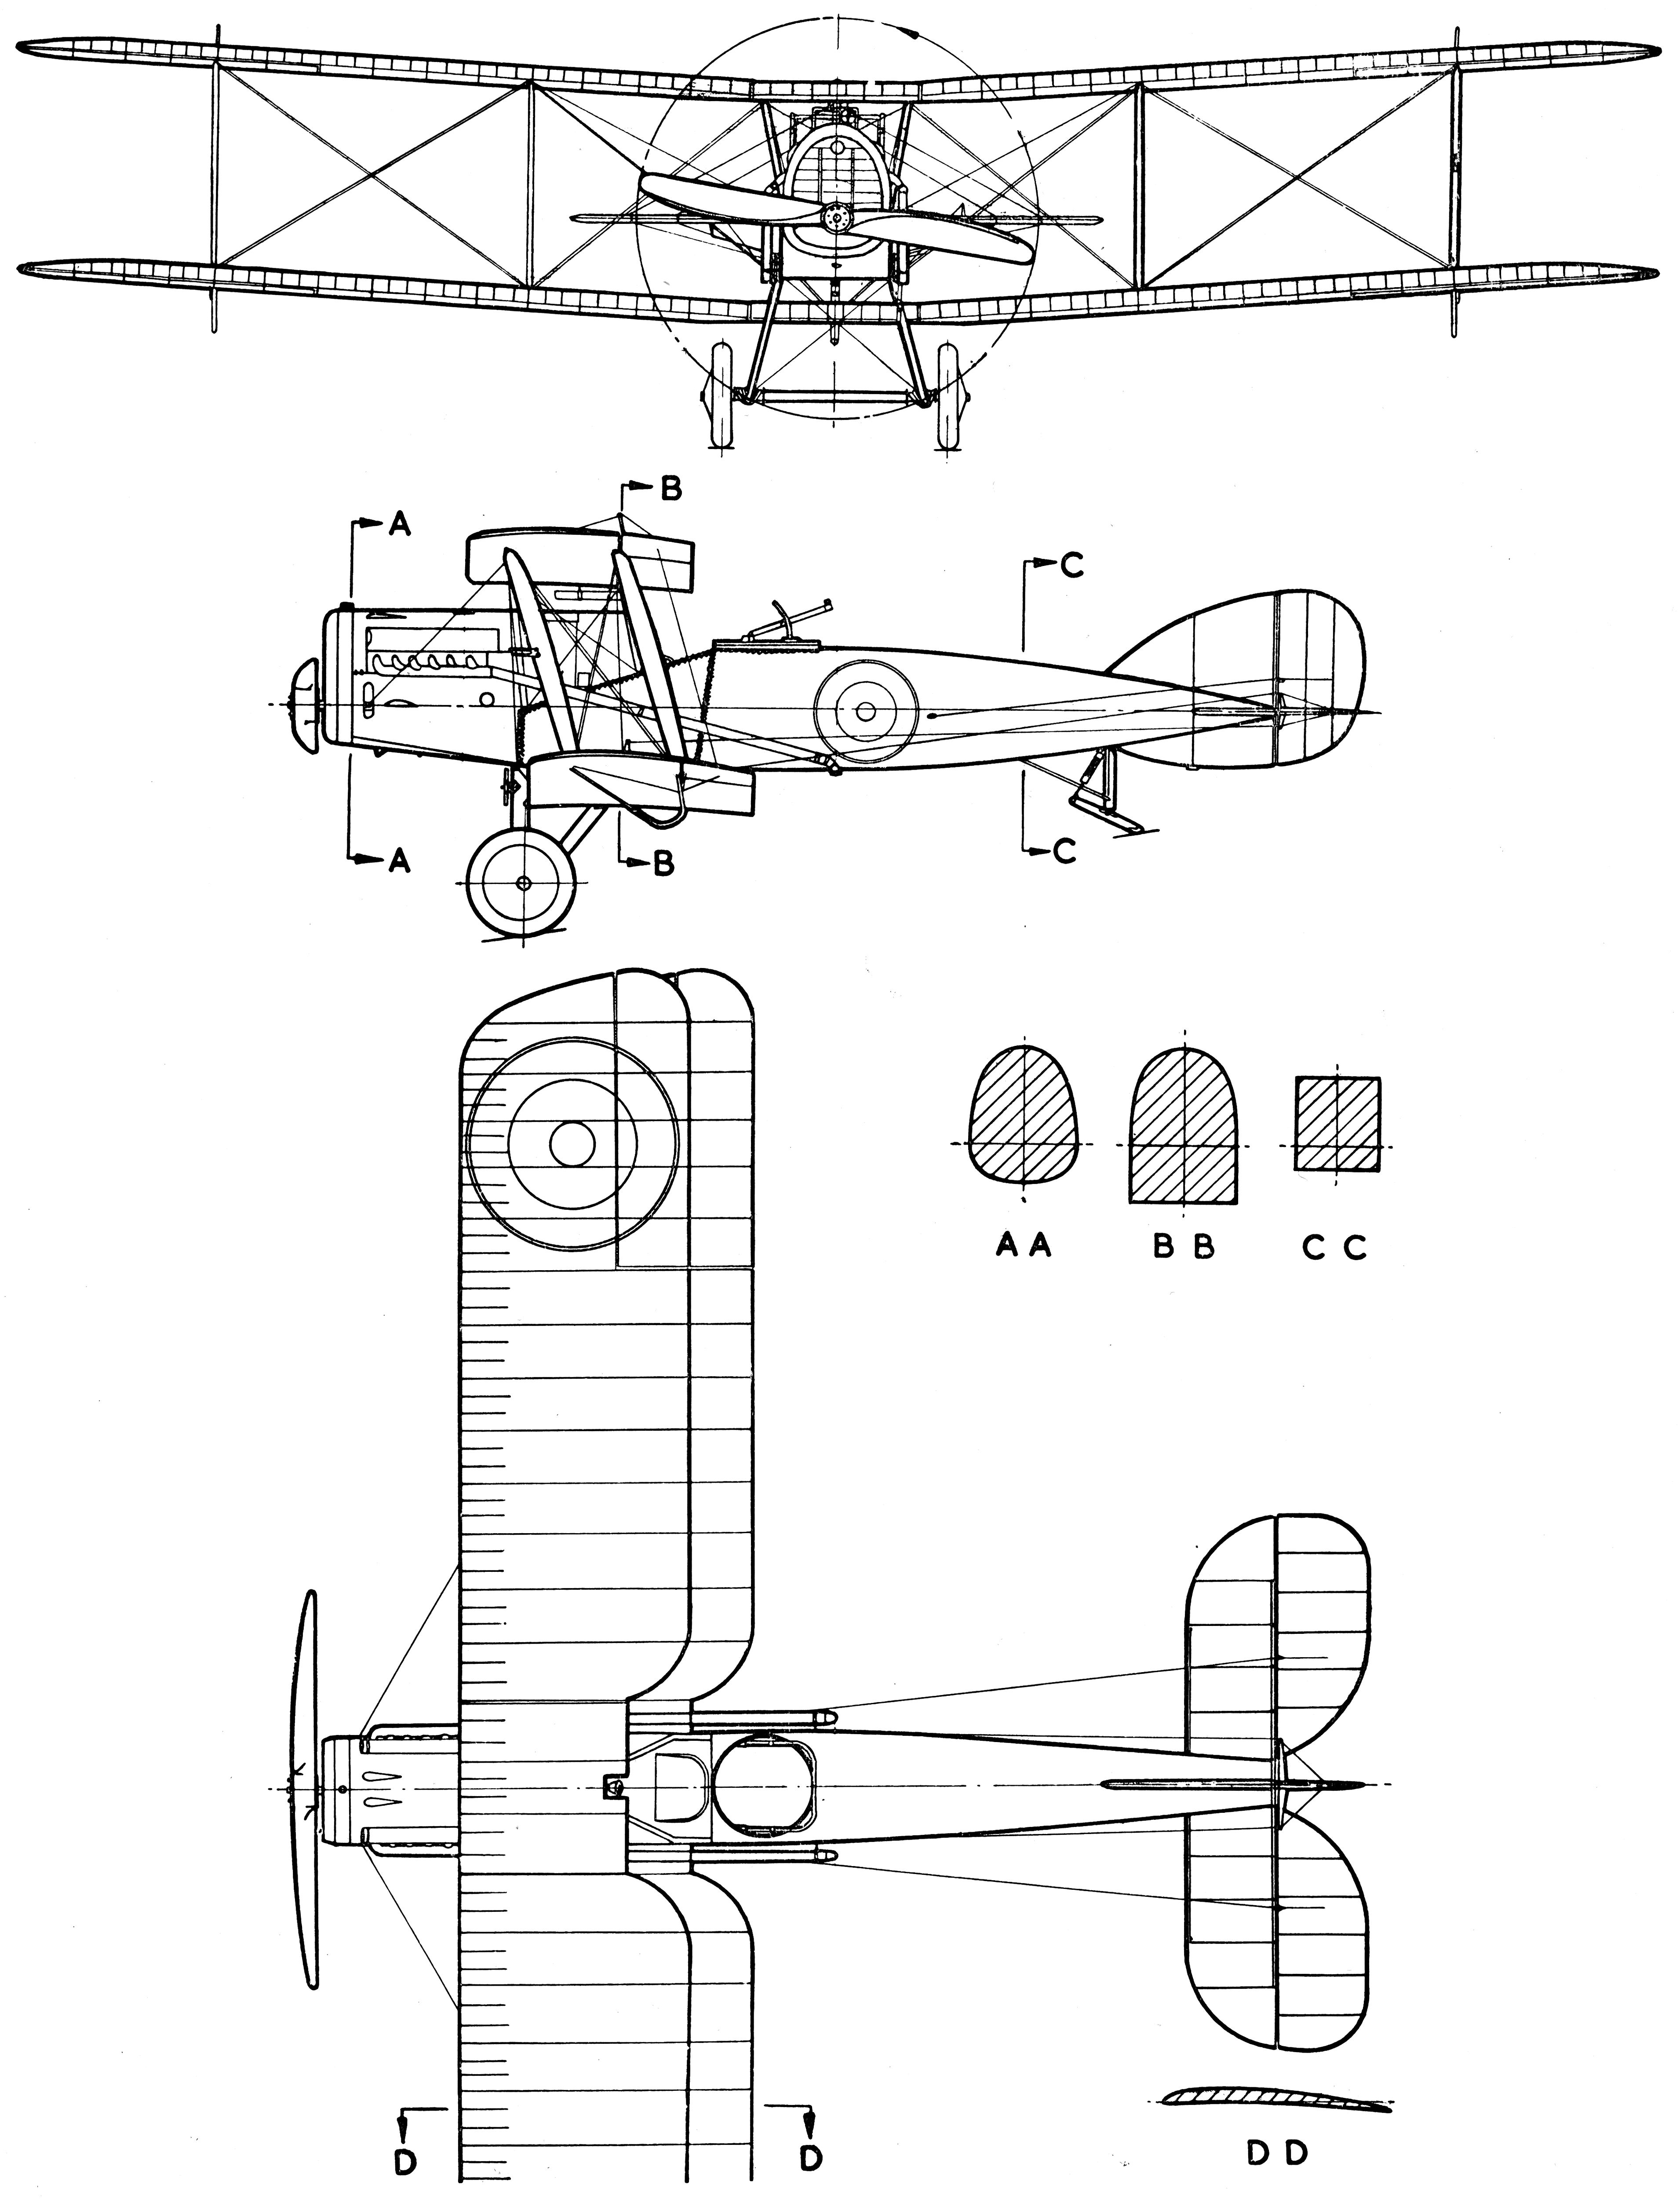 Bristol f2 fighter blueprint blueprints pinterest bristol and bristol f2 fighter blueprint malvernweather Choice Image